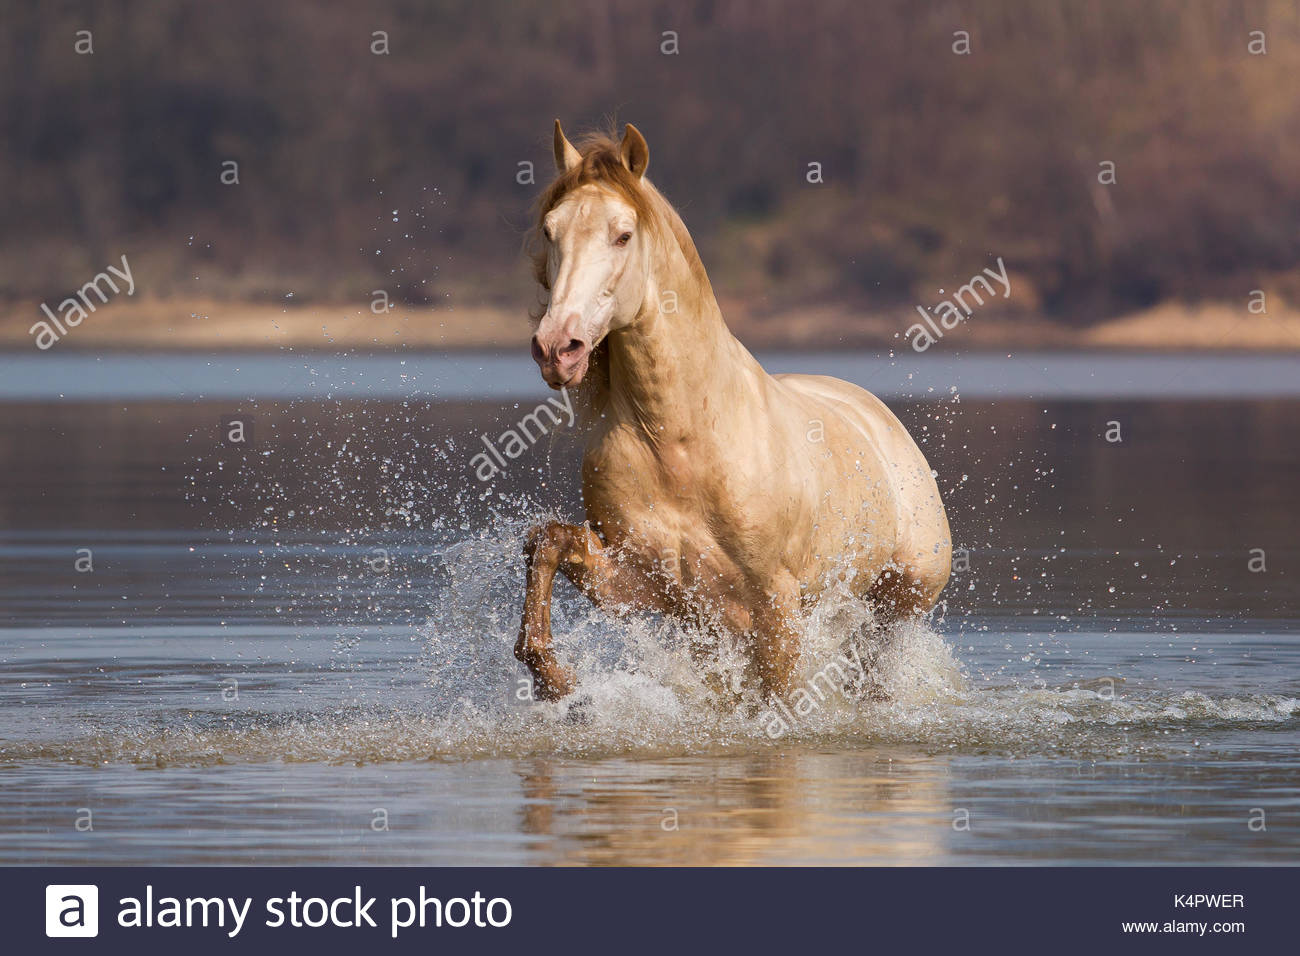 Golden Andalusian stallion in water - Stock Image